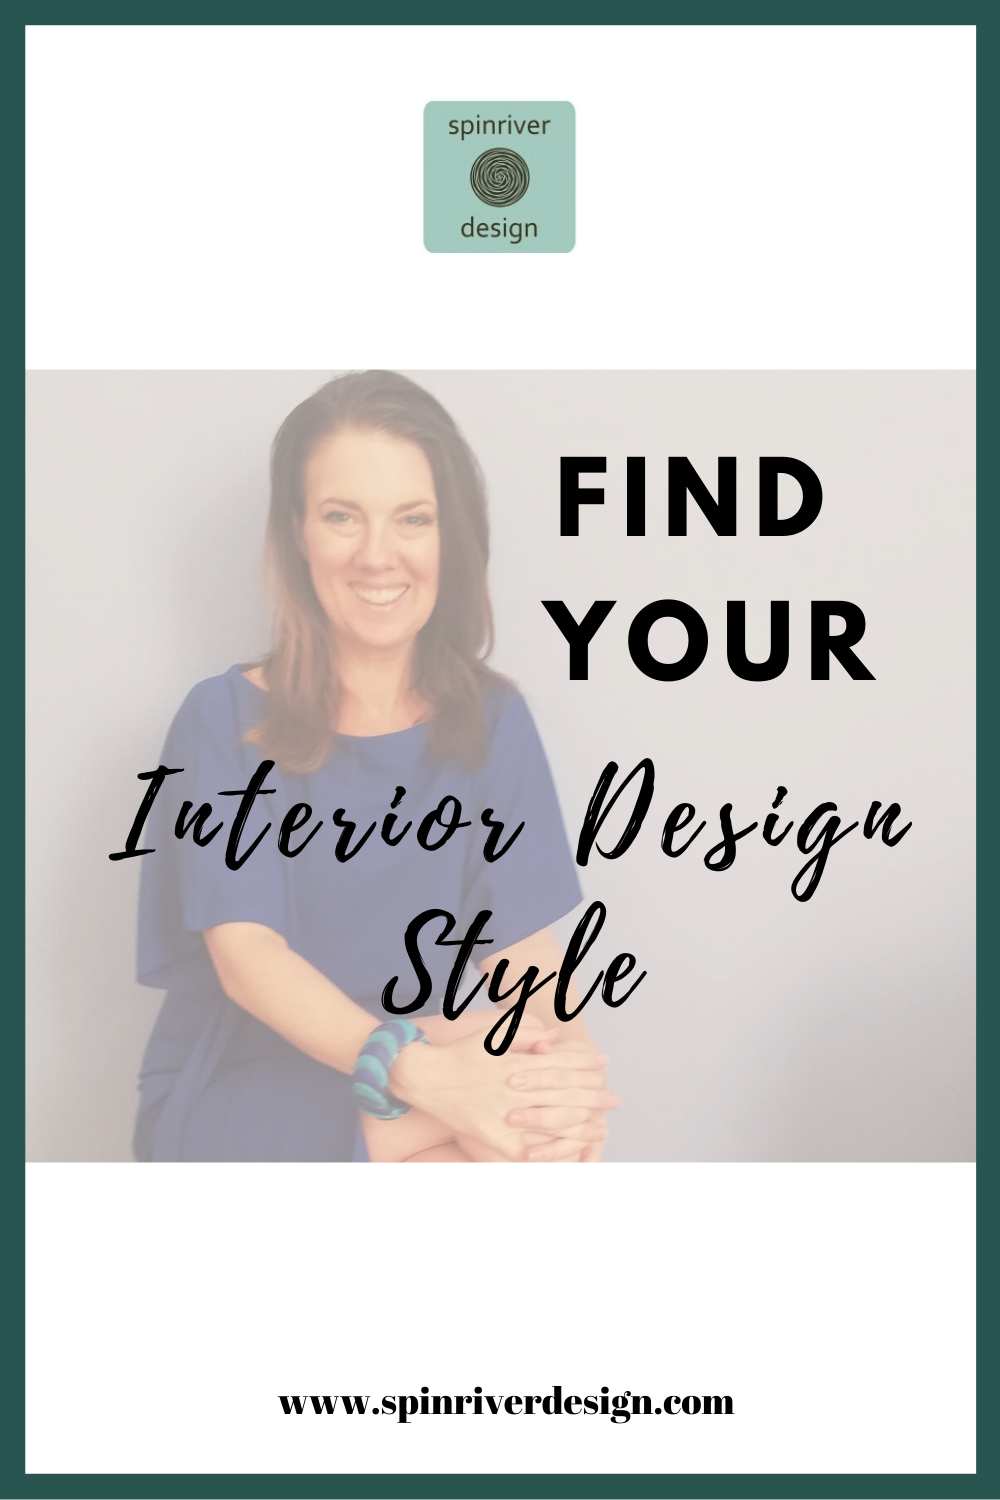 Find Your Inteiror Design Style